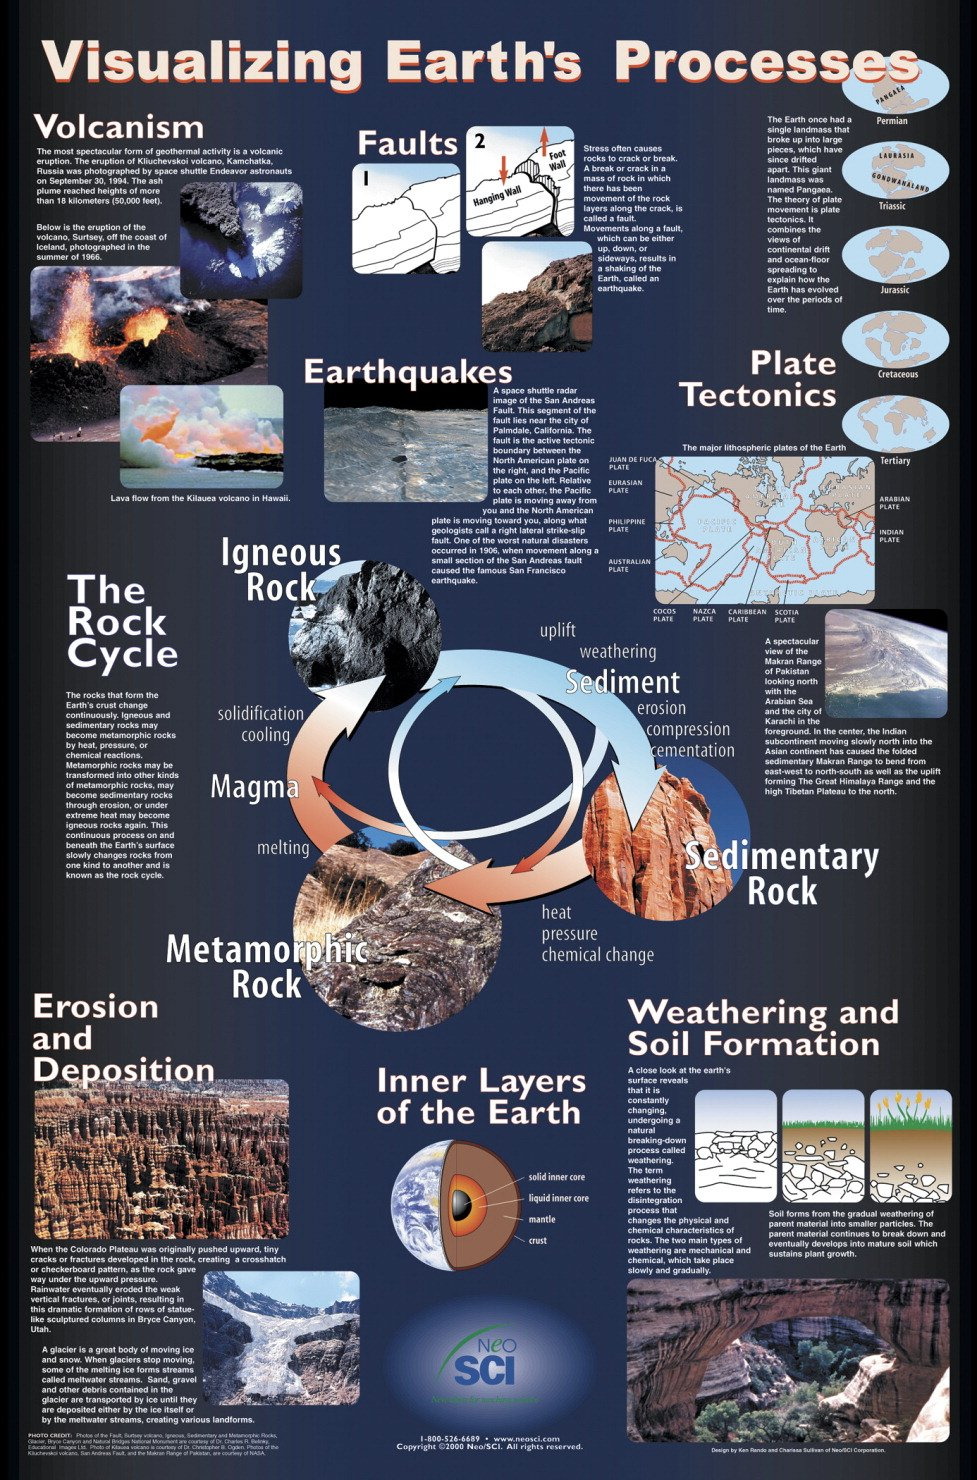 """B00FGE8Y0I Neo Sci Visualizing Earth's Processes Laminated Poster, 23"""" Width x 35"""" Height 81bSzHDJbTL"""